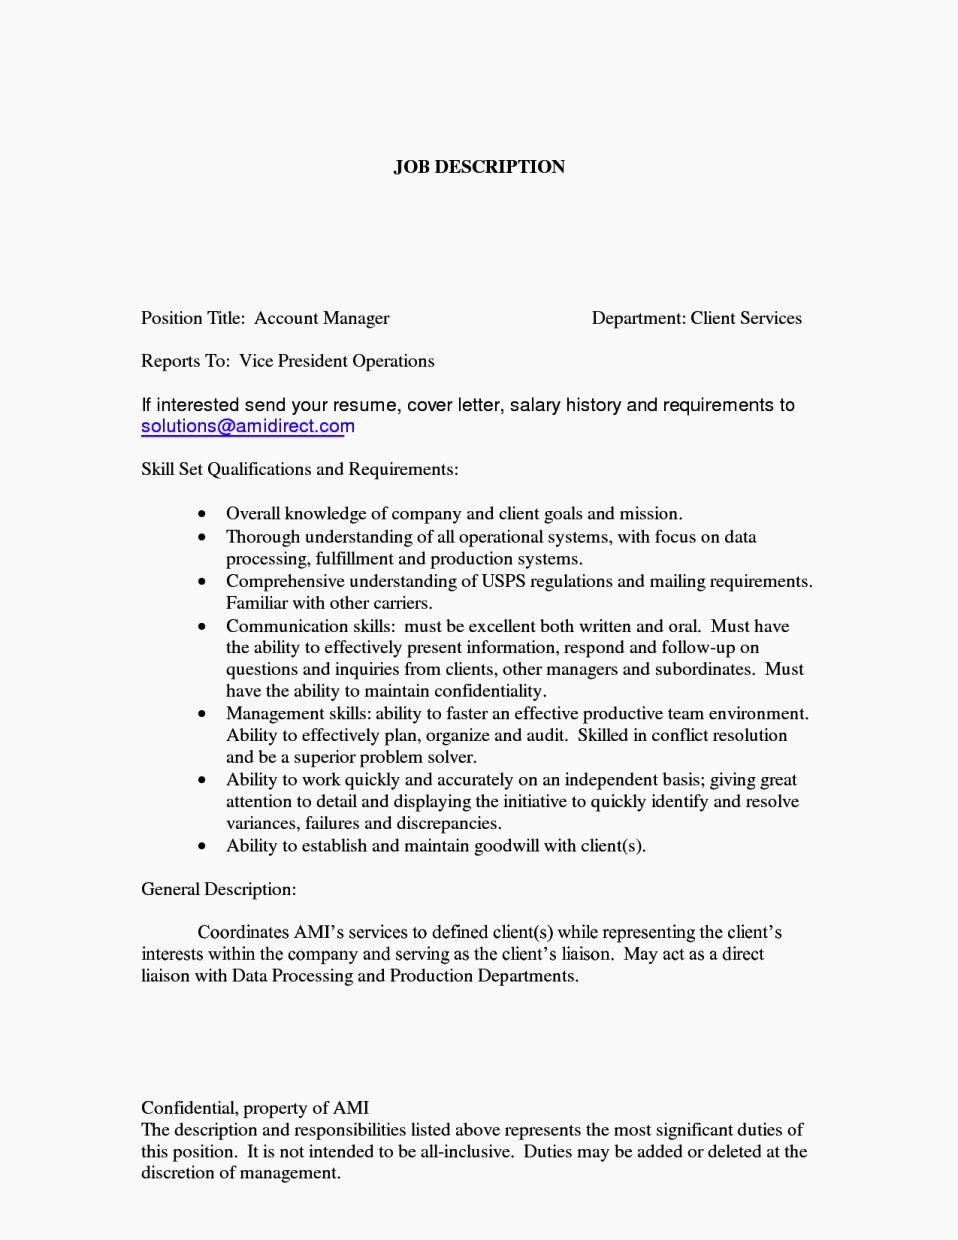 Cover Letter Examples with Salary Requirement